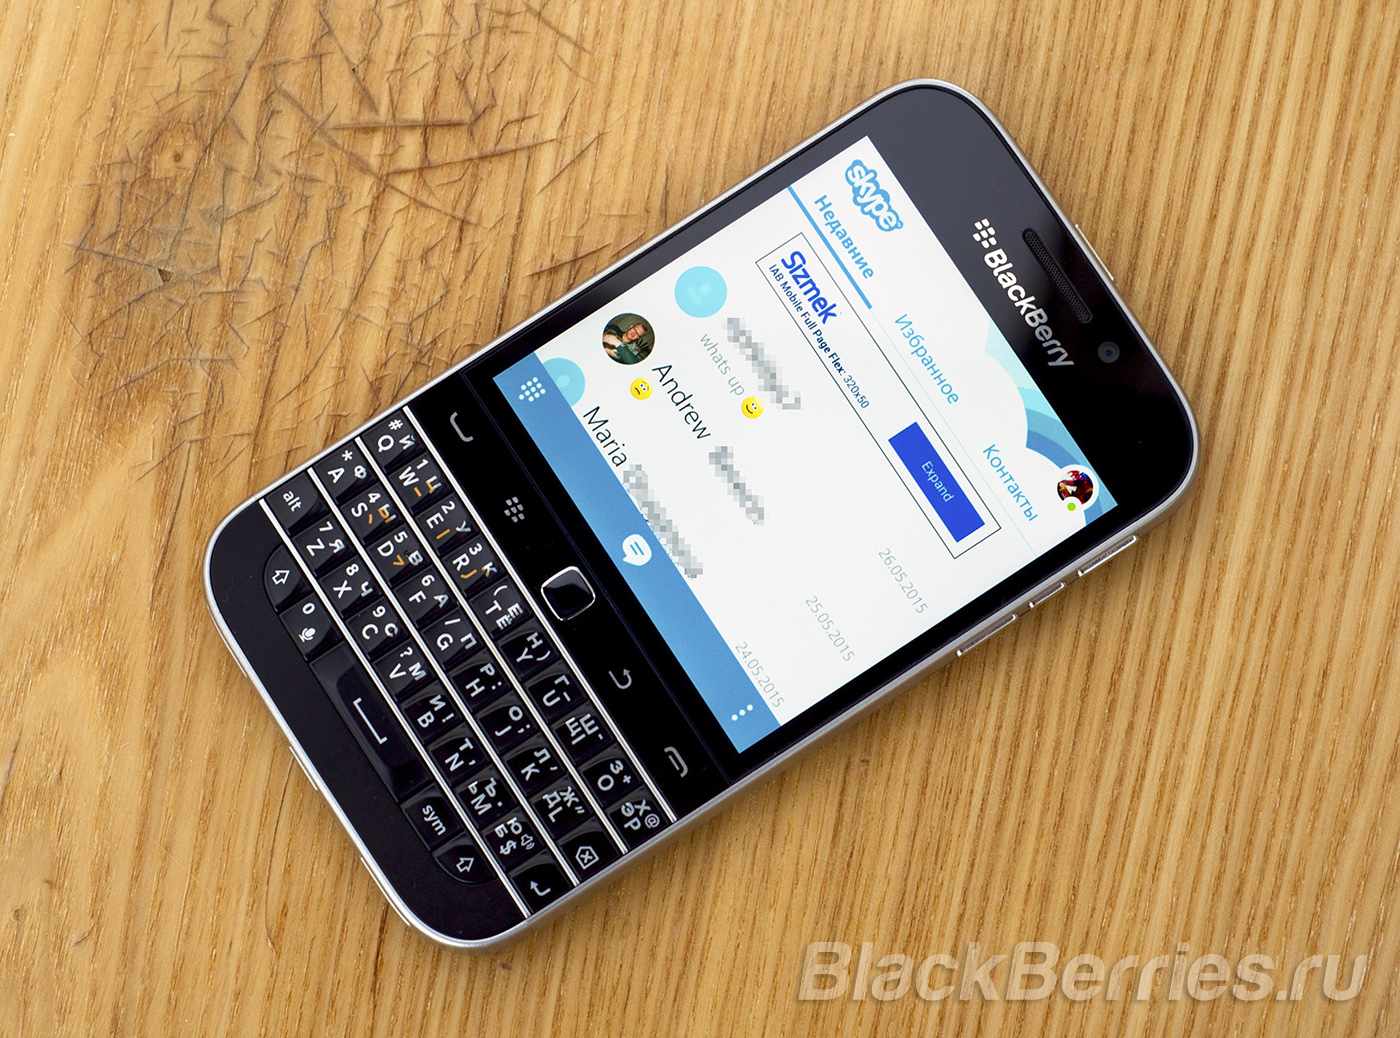 BlackBerry-App-03